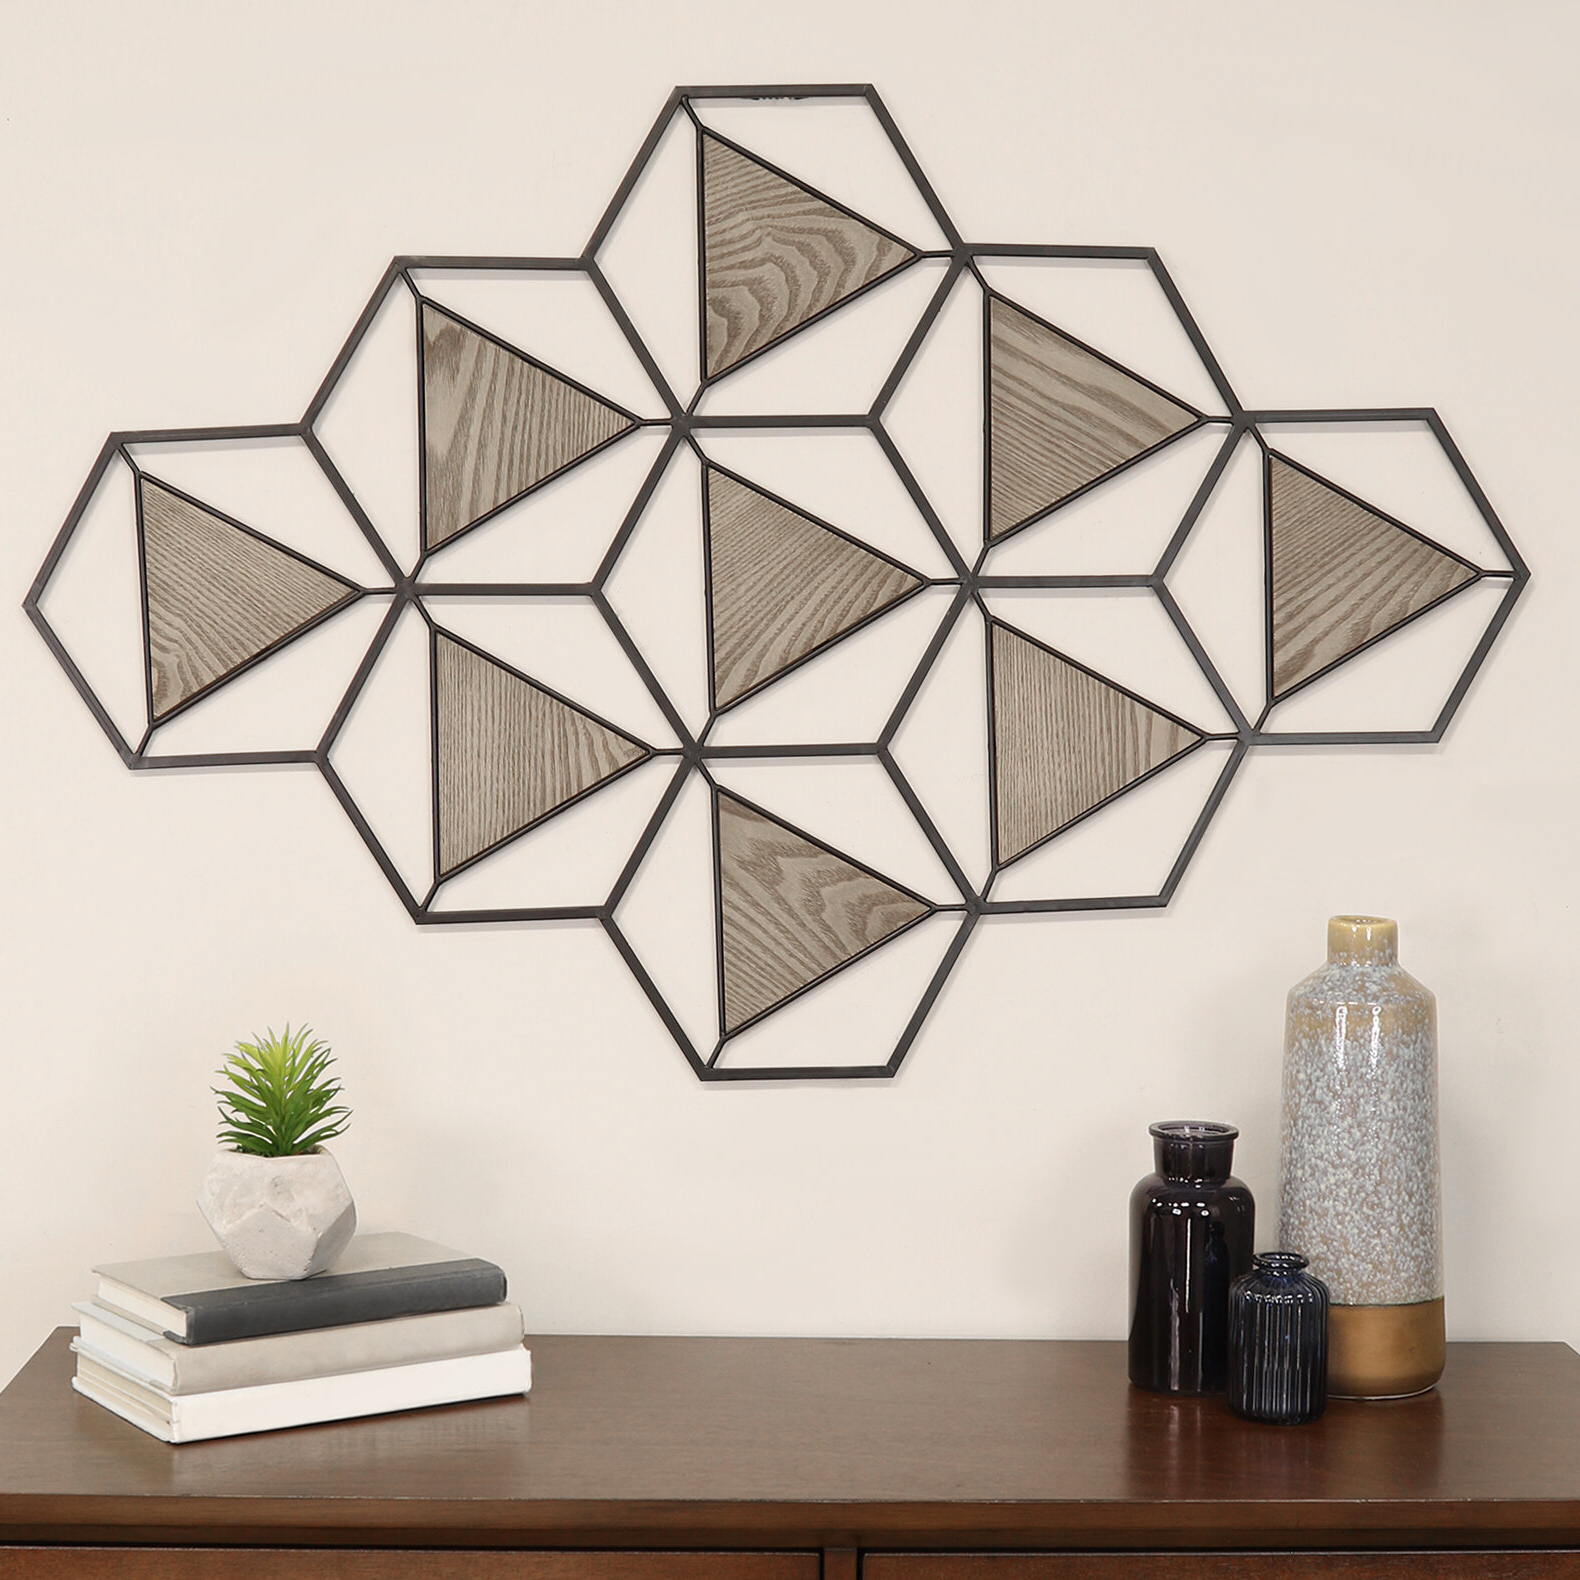 Most Recent Wall Décor By Latitude Run With Regard To Metal And Wood Triangle Abstract Centerpiece Wall Décor (View 2 of 20)